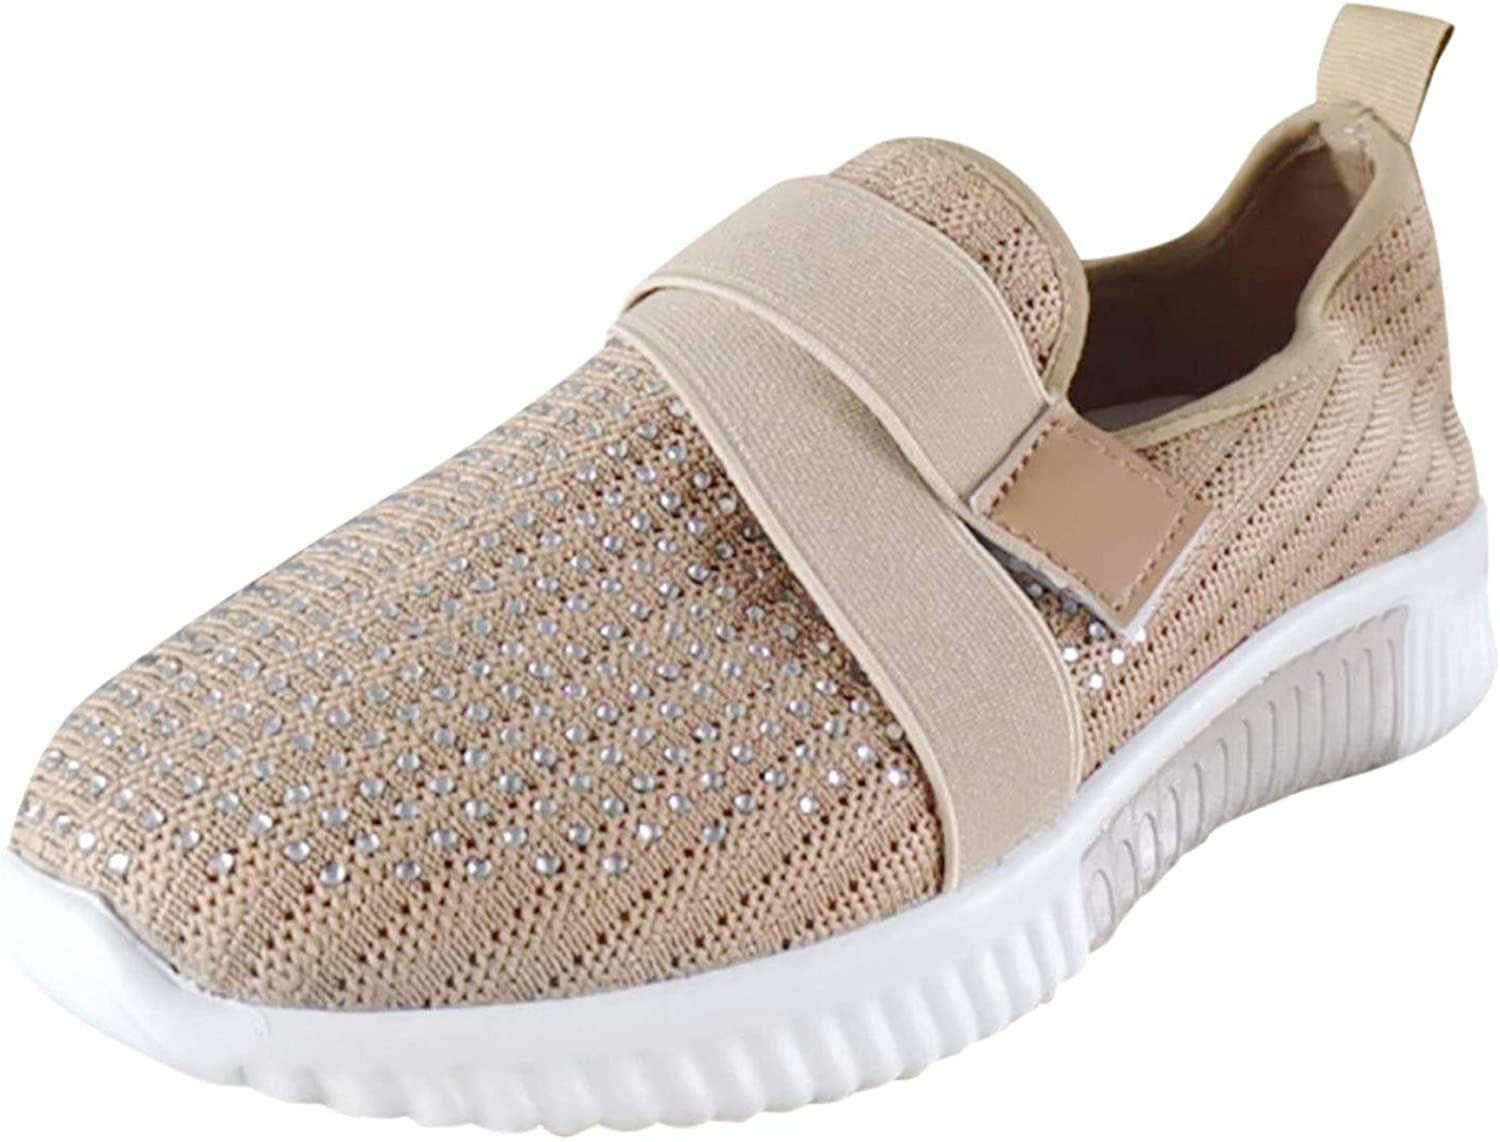 Qisemi Sneakers for Women, Womens Casual Shoes Breathable Lace U